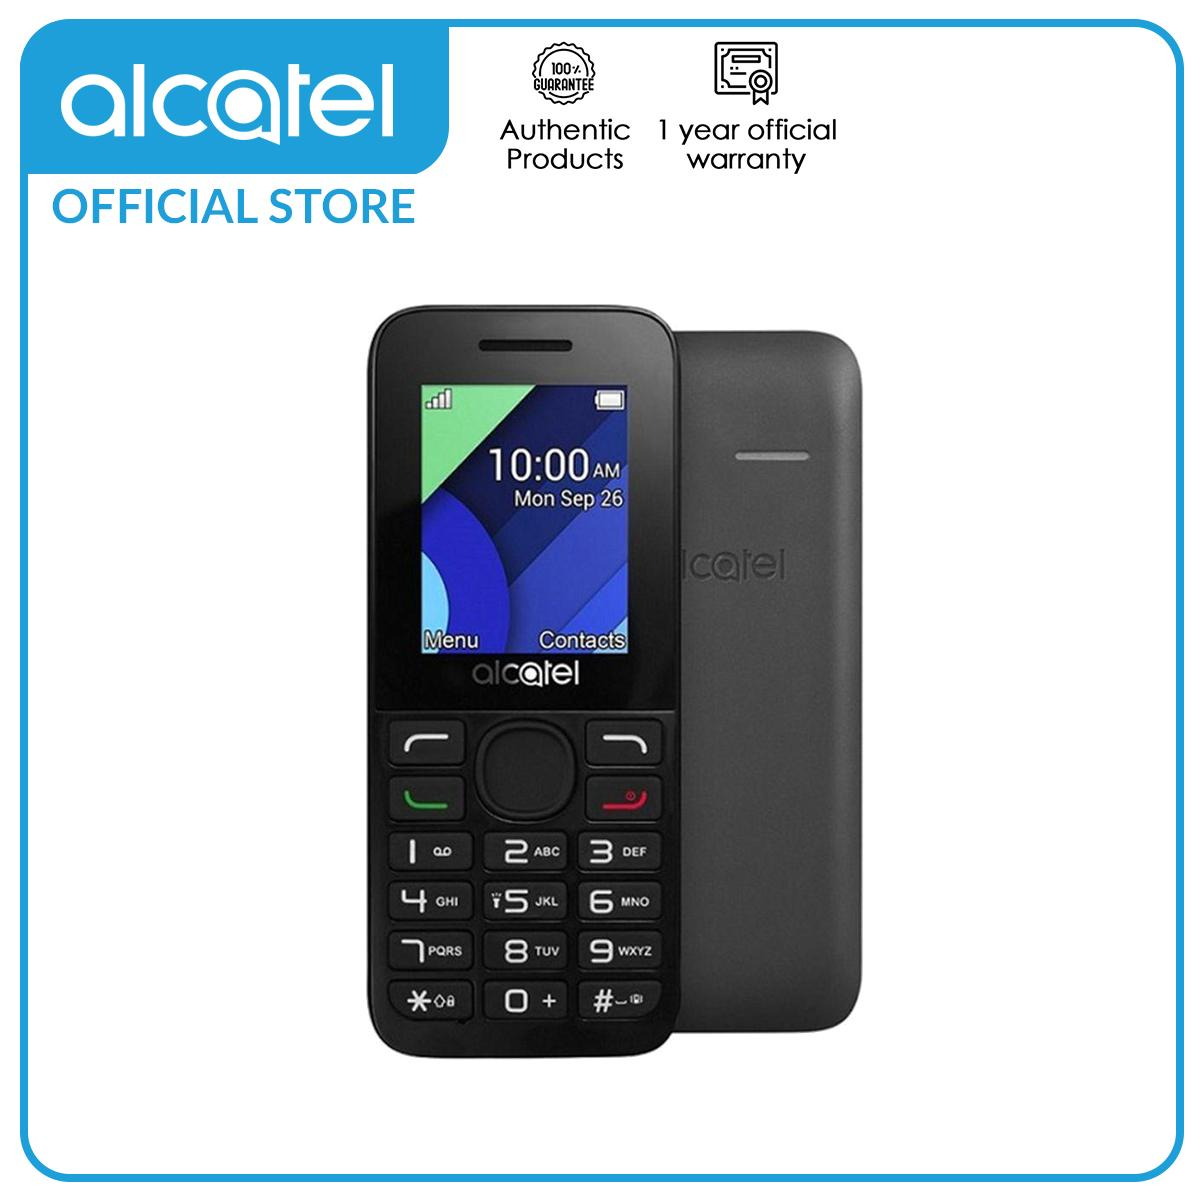 Alcatel Phone Philippines - Alcatel Mobile for sale - prices